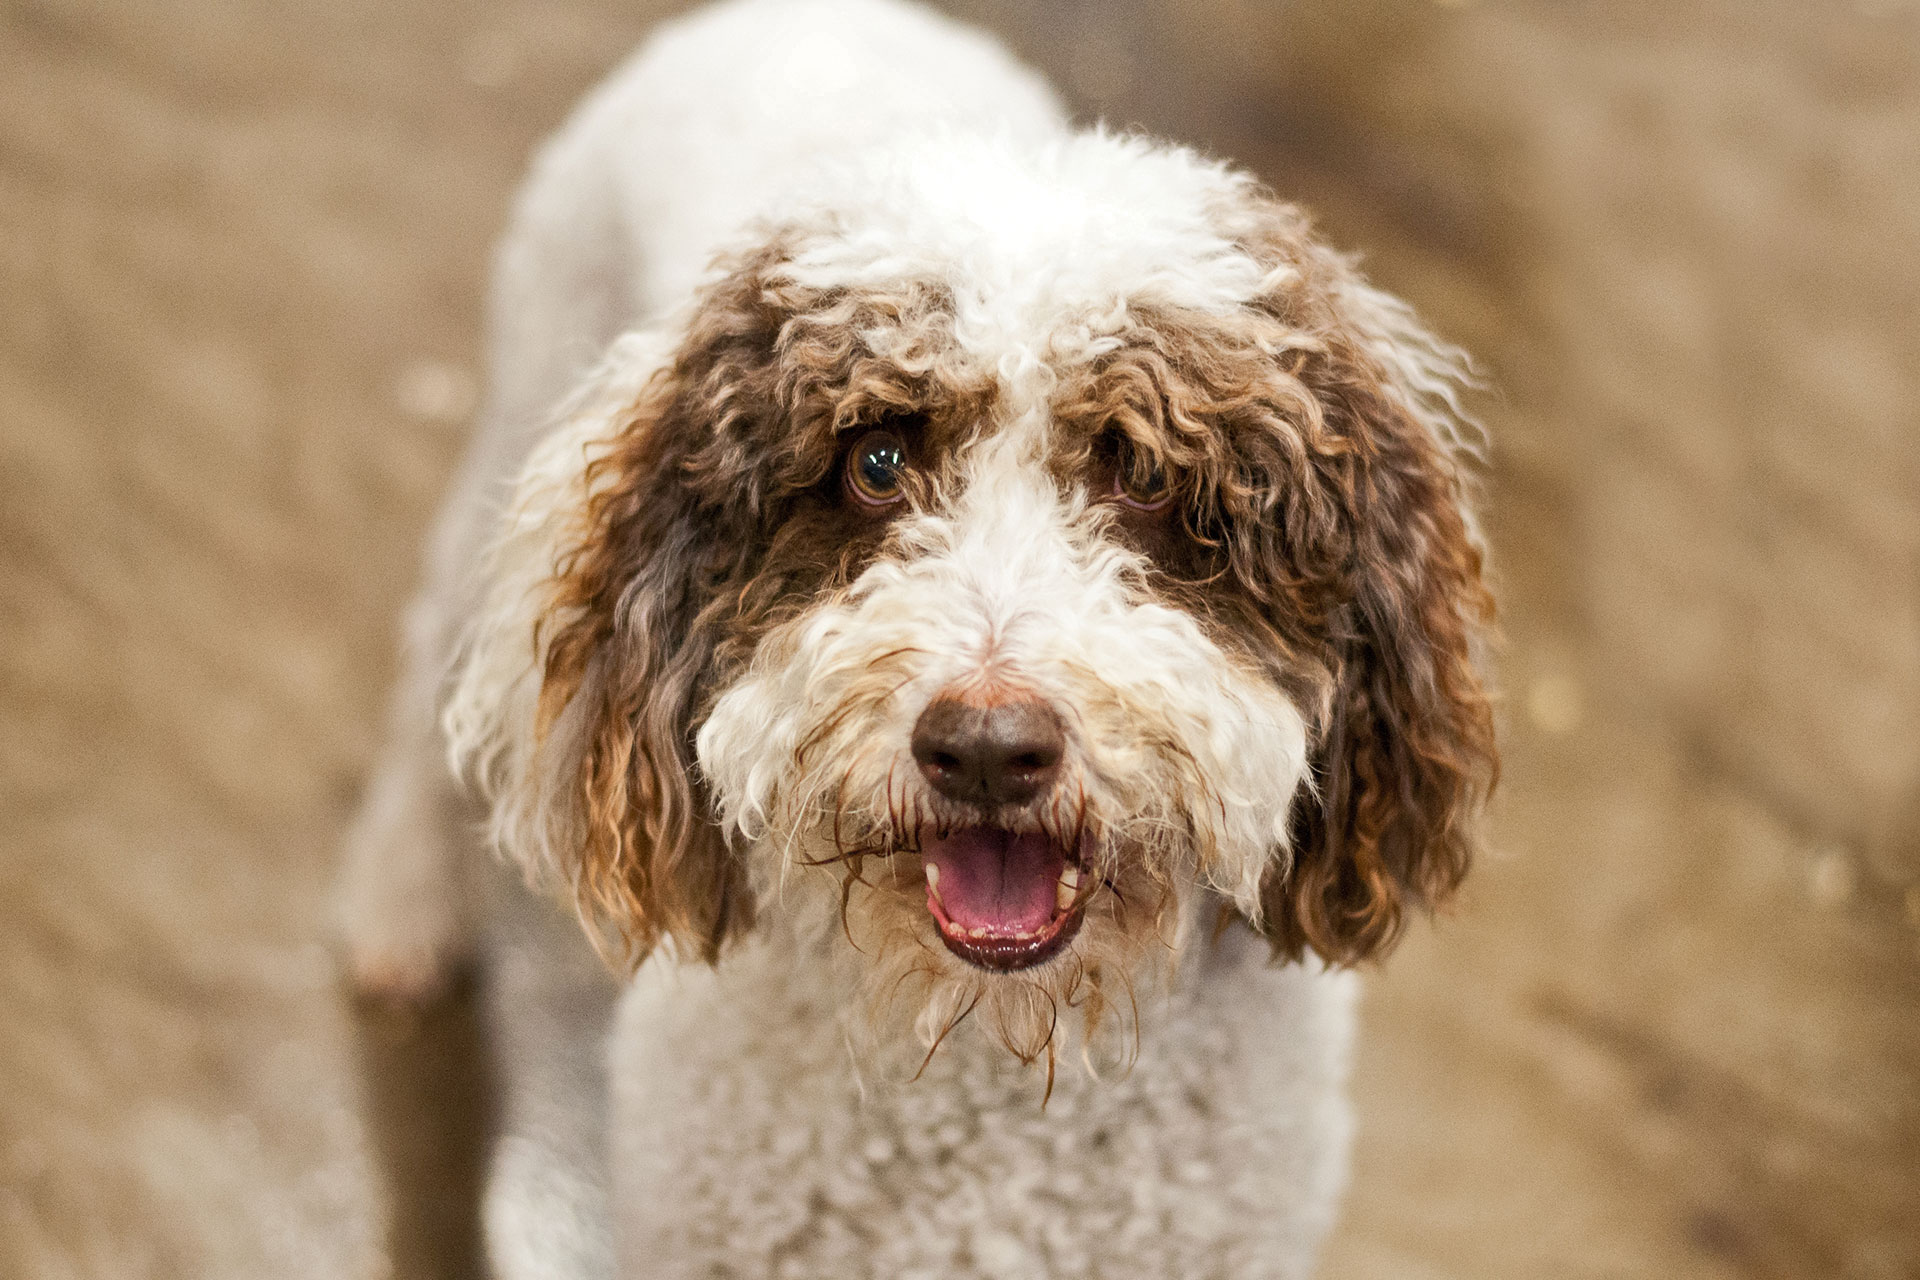 7 dog breeds that like water- Irish water spaniel